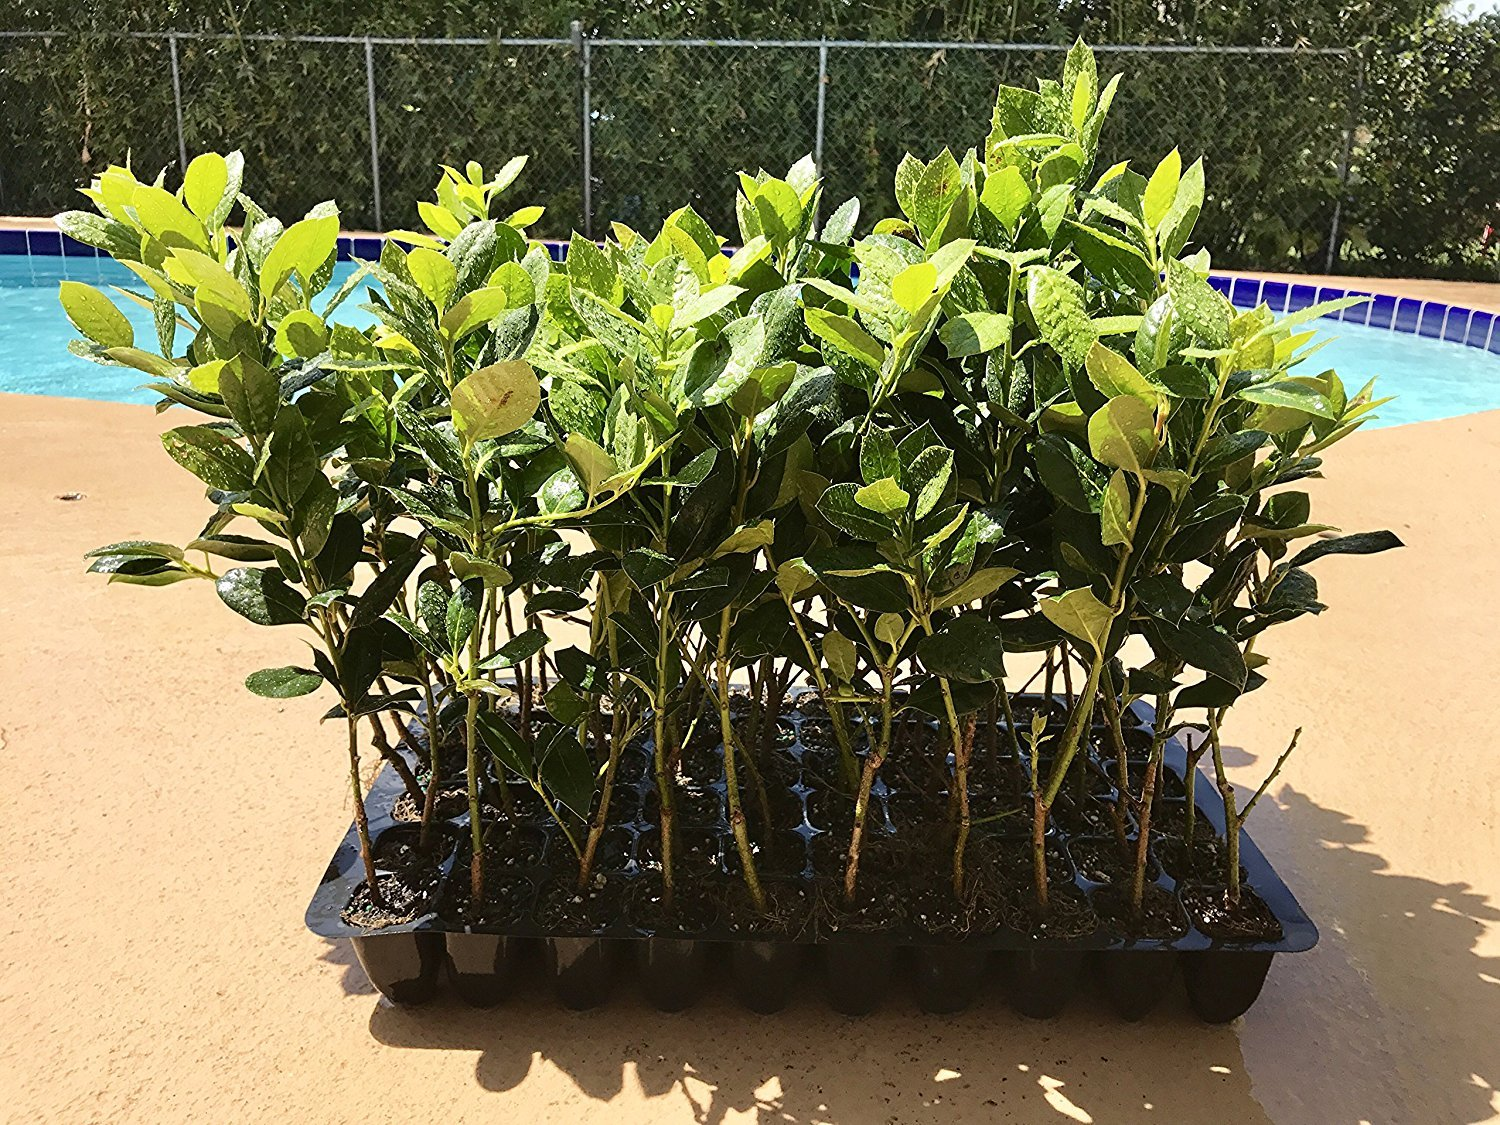 Nellie R. Stevens Holly - 20 Live Plants - Evergreen Privacy Trees by Florida Foliage (Image #1)